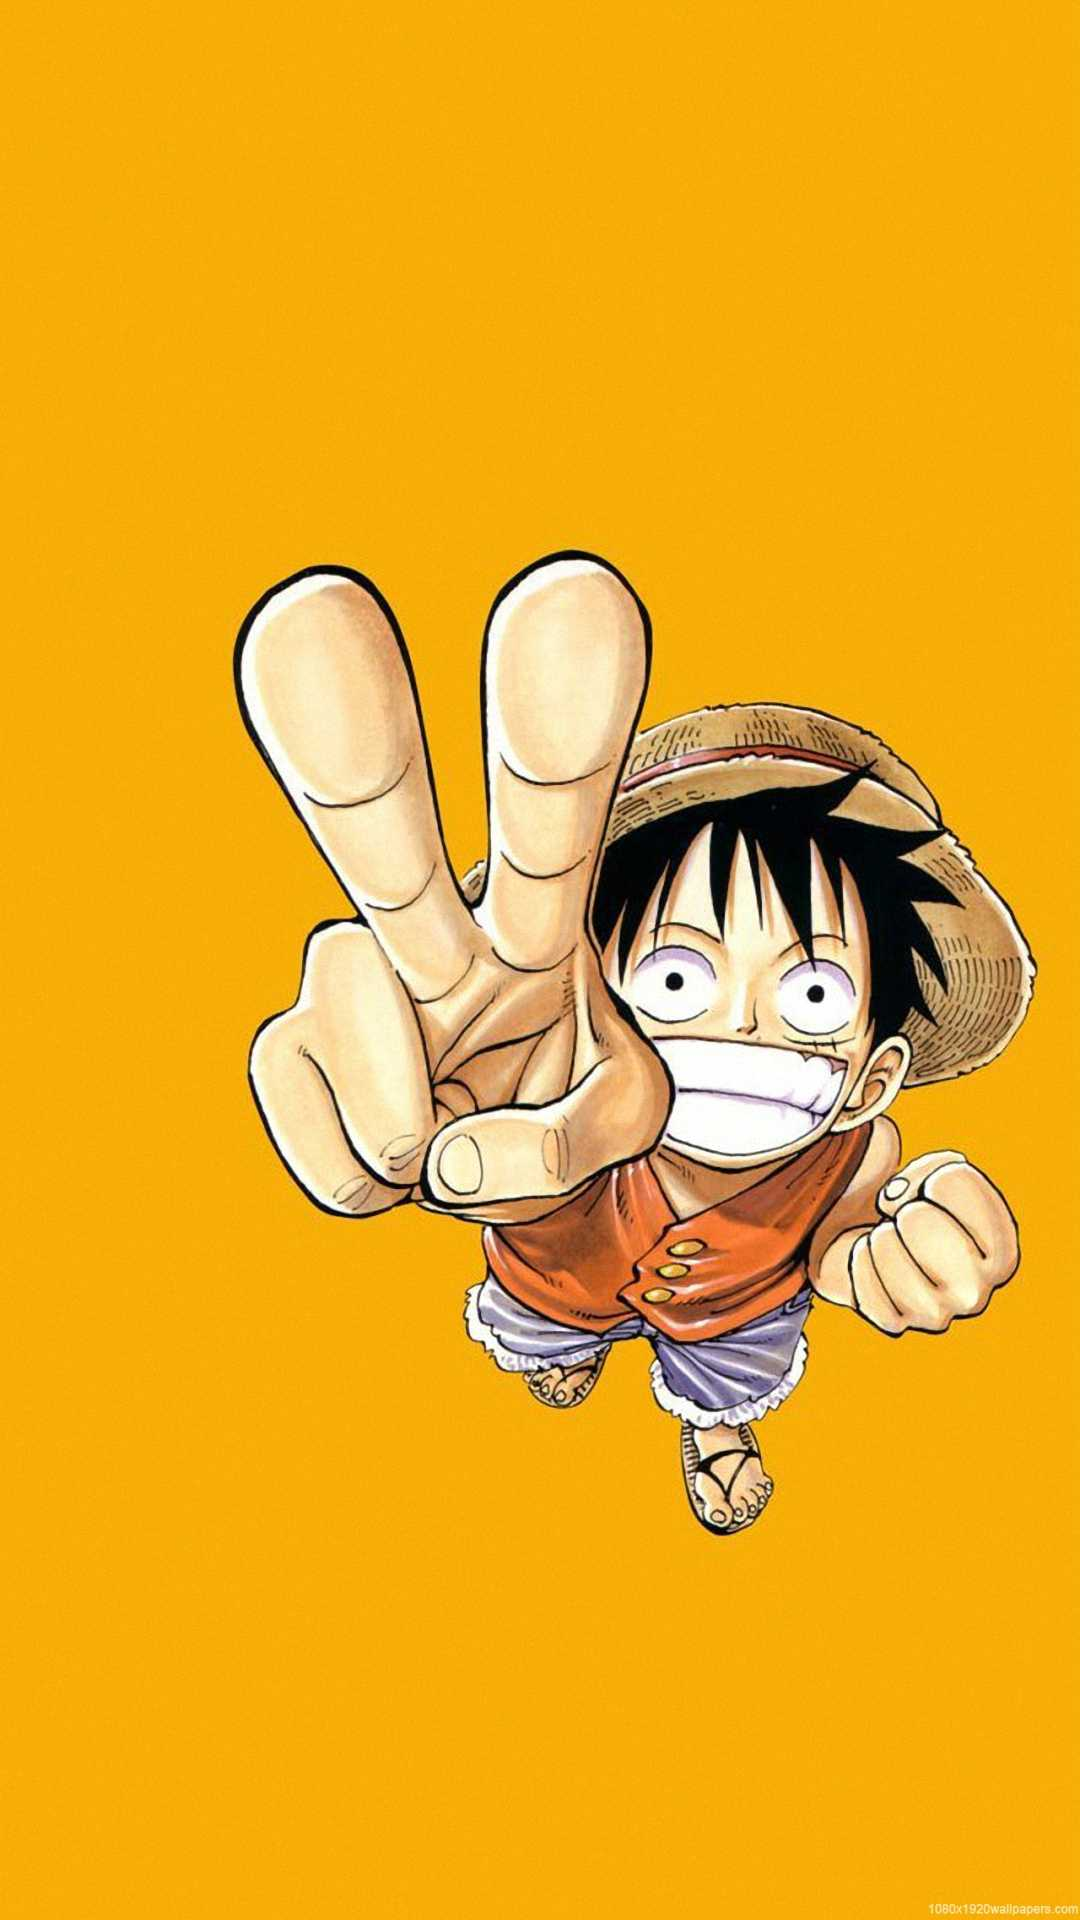 Wallpapers Hd Of One Piece Iphone For Android Desktop Mobile Phones